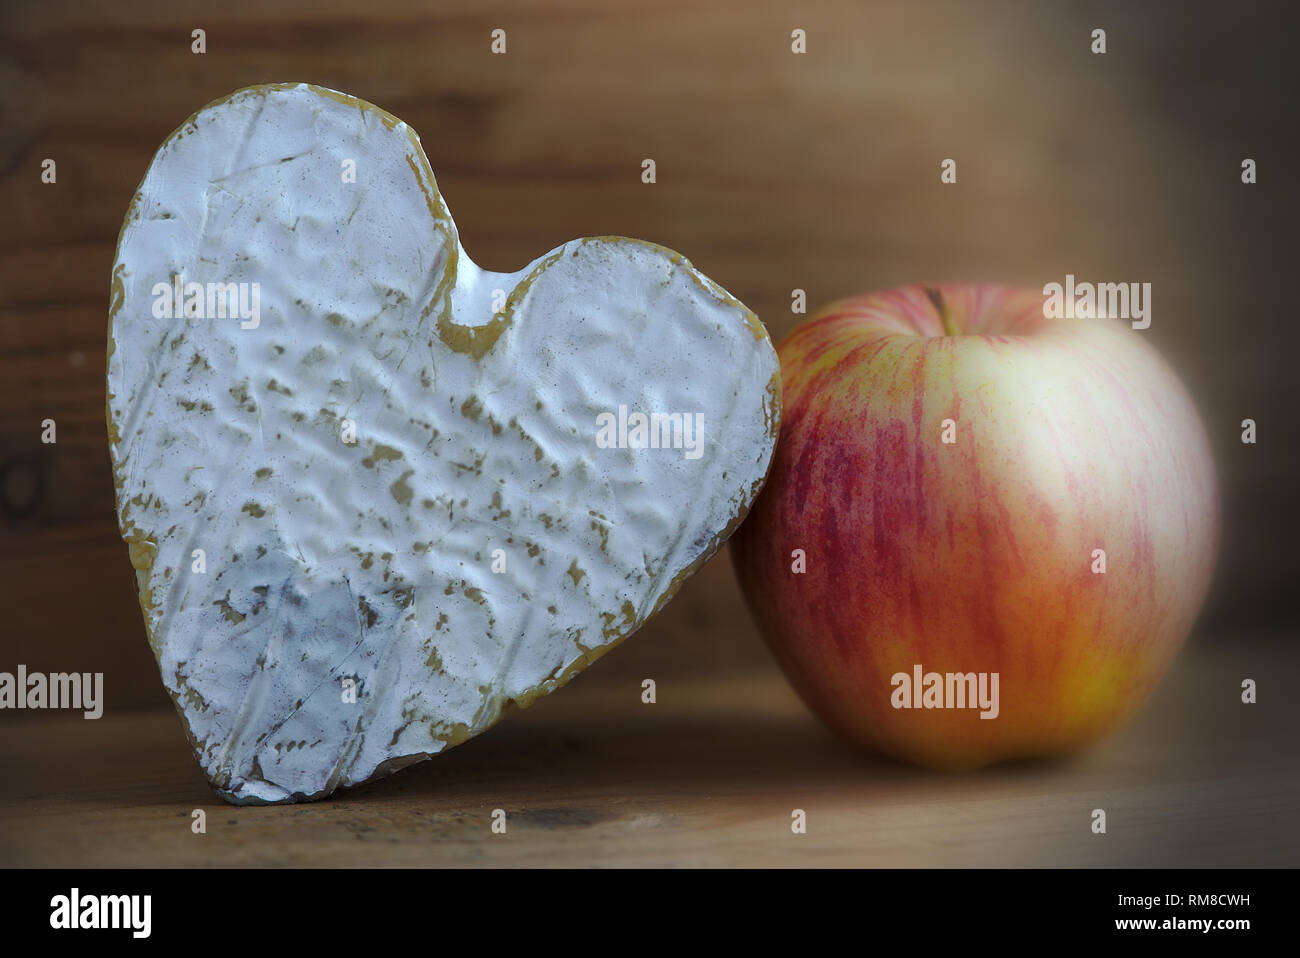 still life with a Norman cheese Neufchatel (A.O.P.) and an apple, on wooden background - Stock Image